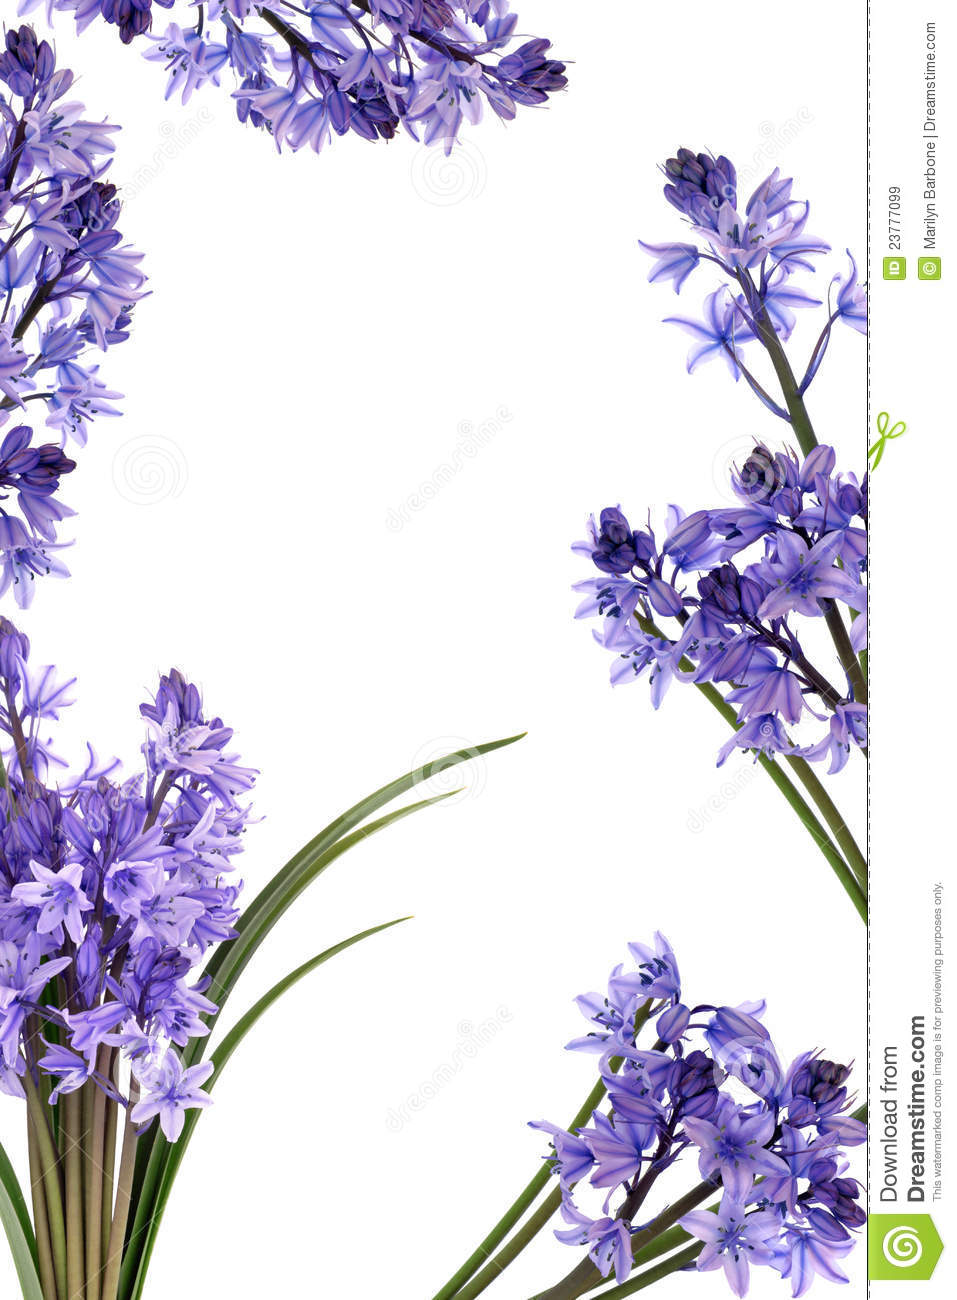 Bluebell Flower Border Royalty Free Stock Images - Image: 23777099